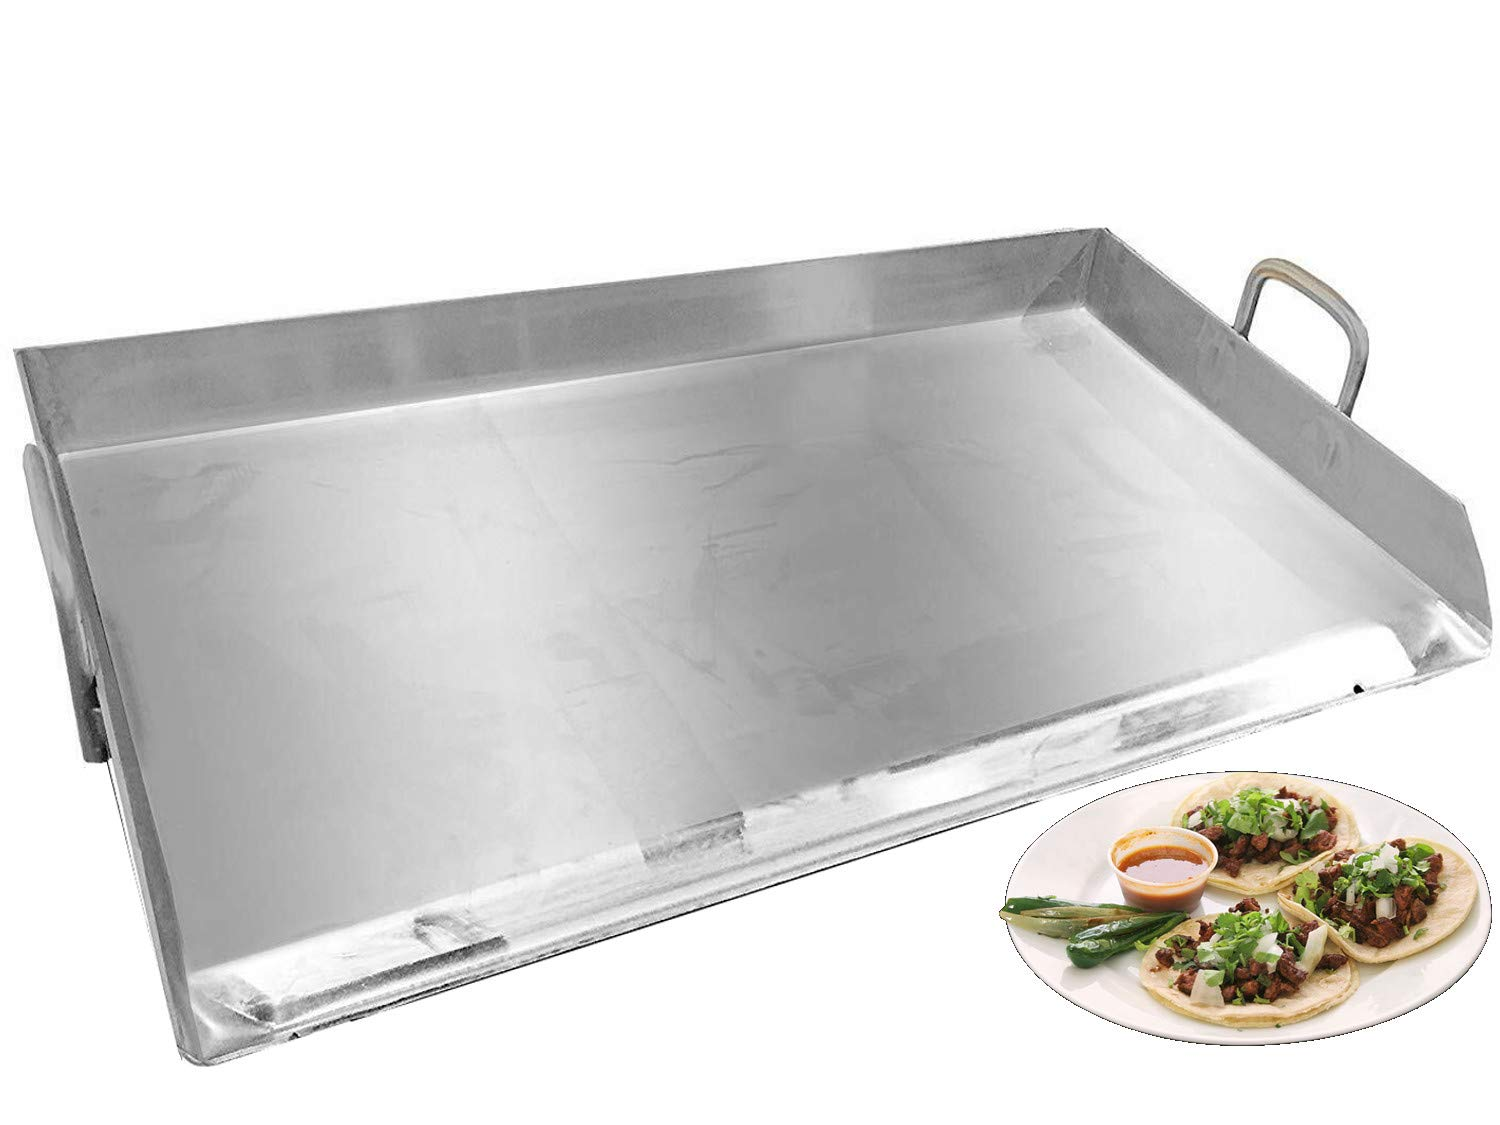 Professional Restaurant Style Stainless Steel Rectangular Griddle Pan Comal Plancha Flat Top For Tailgating,Parties,BBQ Grills Outdoor Cooking-32'' x 17''